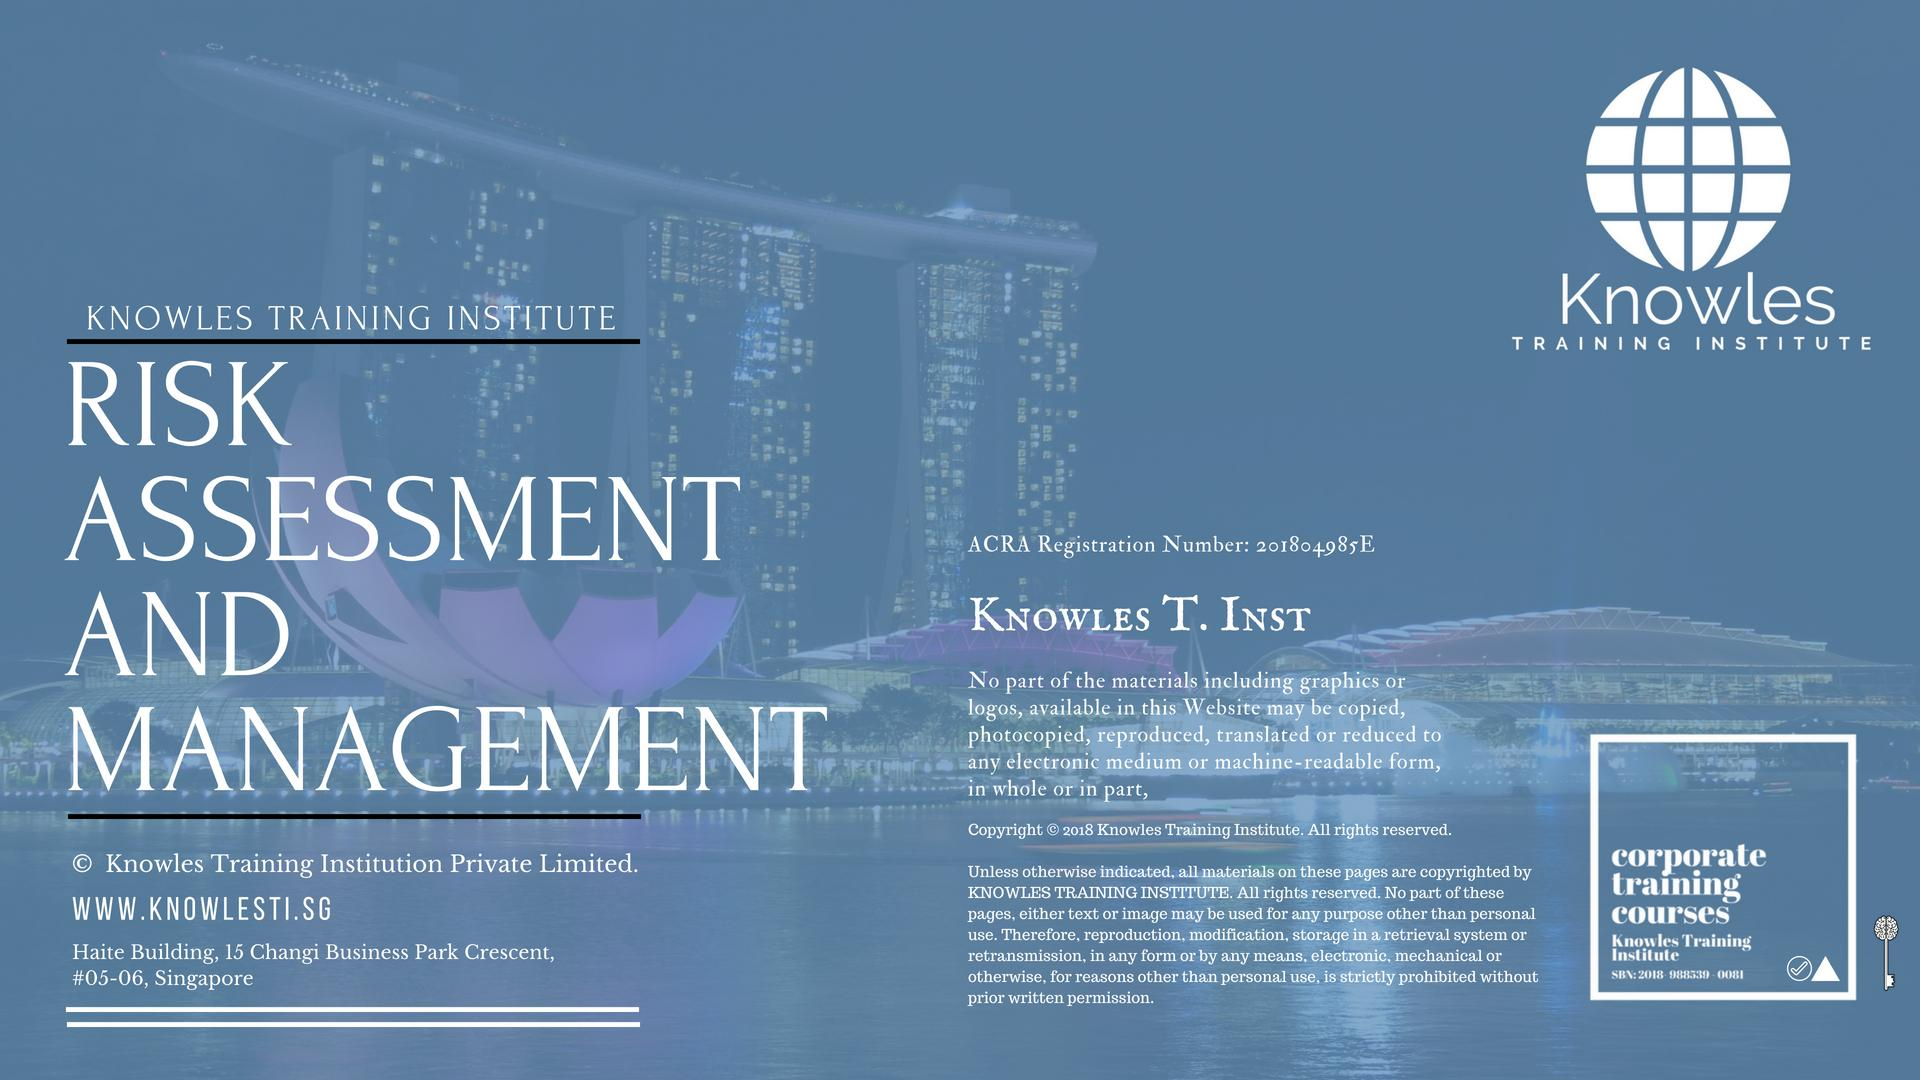 Risk Assessment And Management Course in Singapore